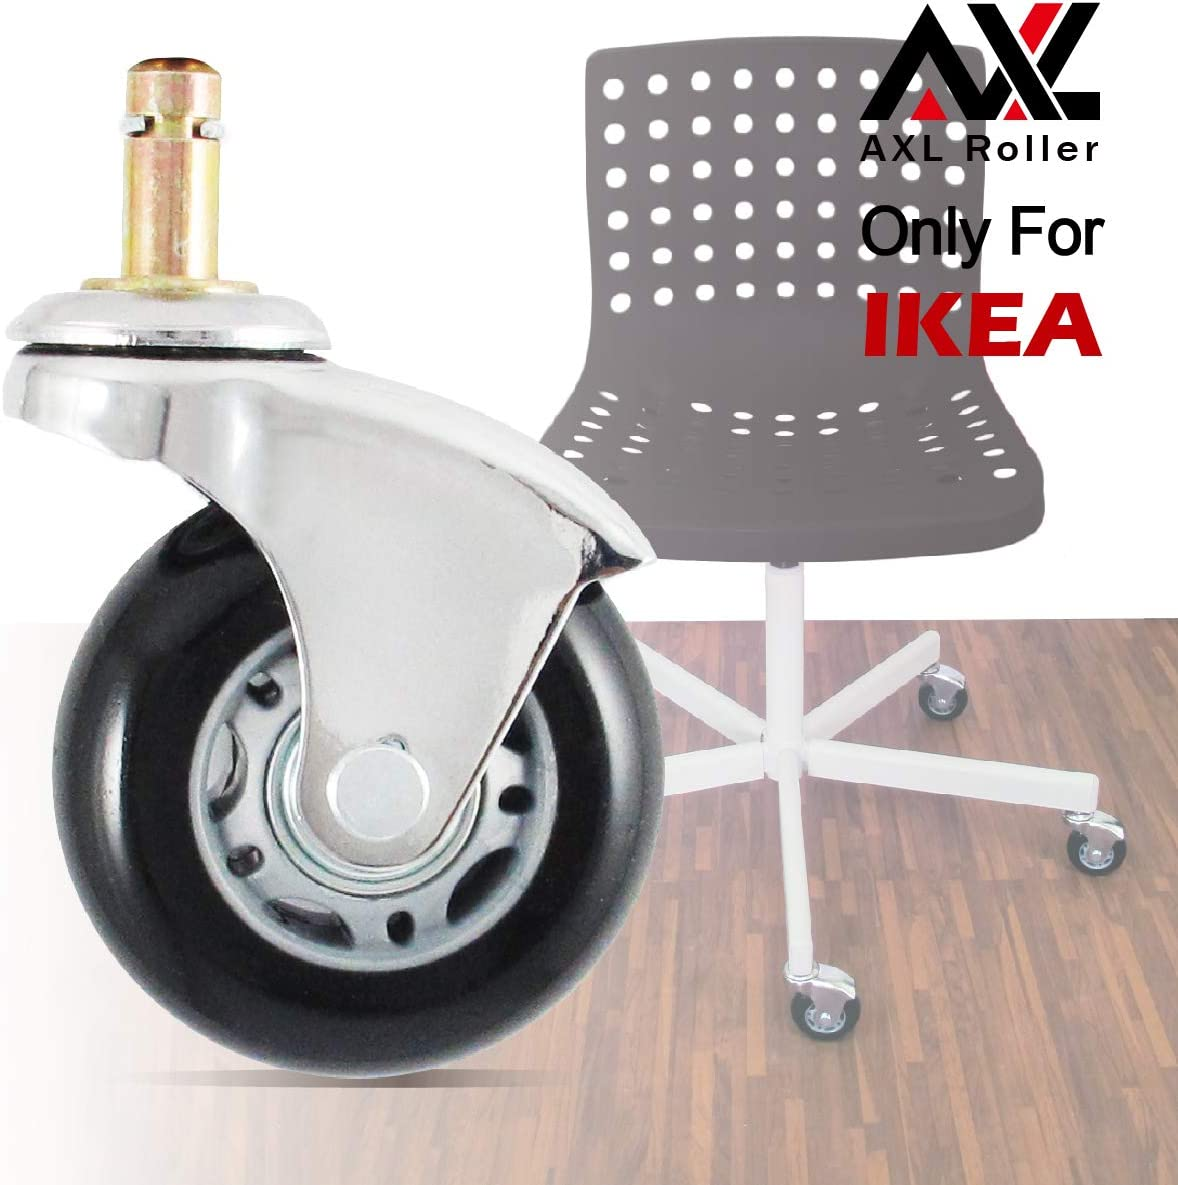 AXL 2.5 inch Office Chair Caster Wheel Replacement for Roller blade Wheels Heavy Duty Casters for Hardwood Floors Safe (IKEA 10mm) (2.5 inch Chrome, Grey/Black)